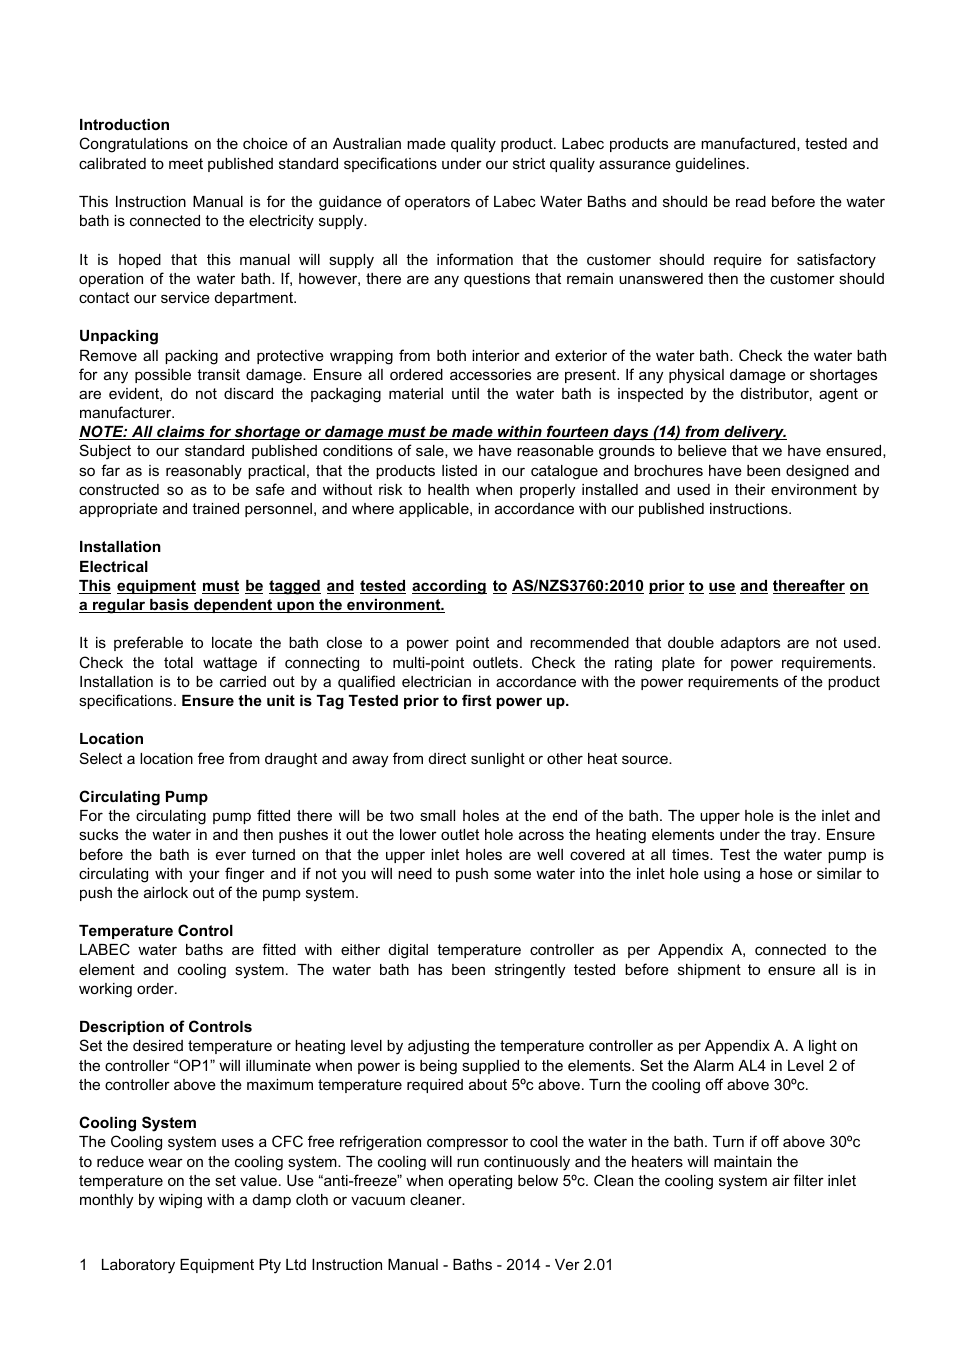 Labec lbc 8 user manual page 2 4 also for lbc 6 lbc 4 publicscrutiny Choice Image